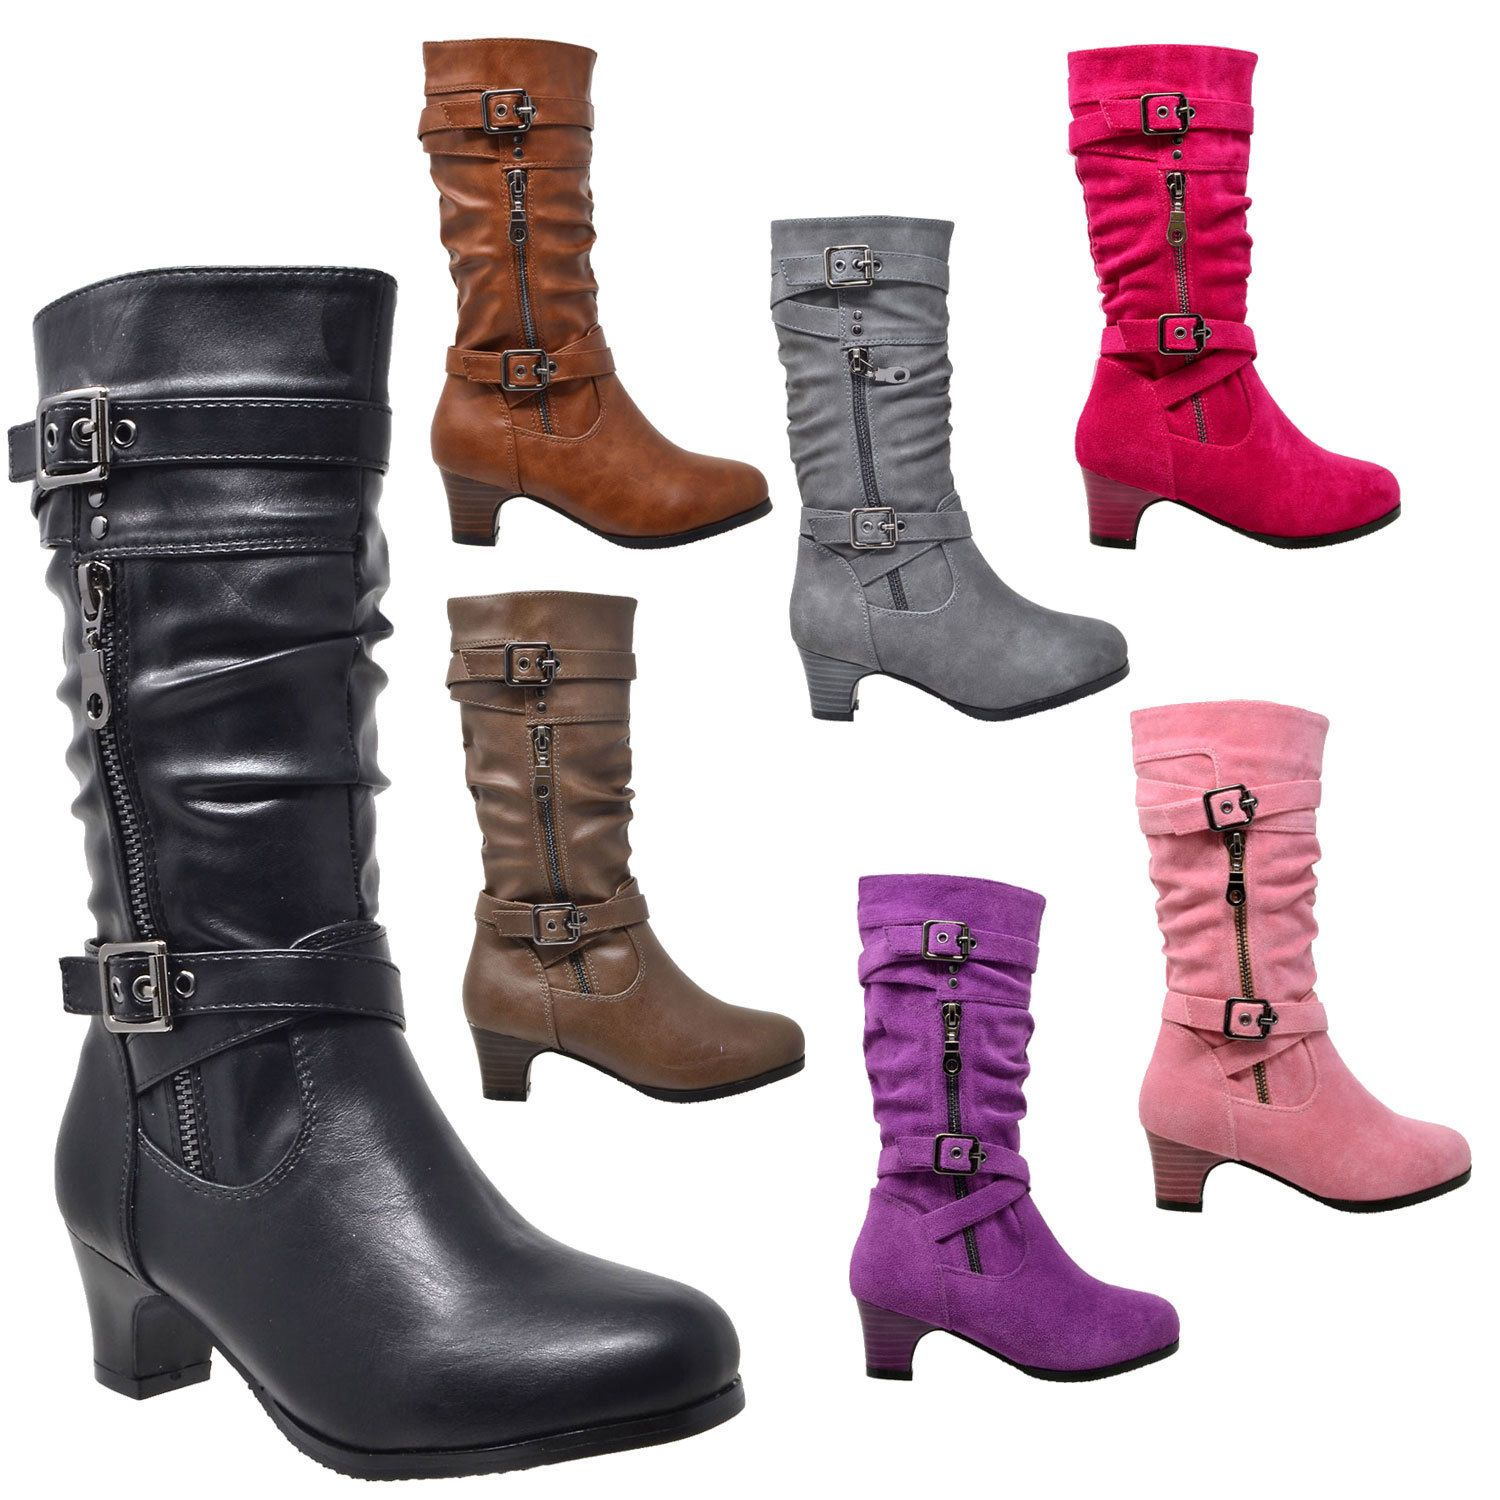 Kids Ruched Mid Calf Faux Suede Knitted Fabric High Heel Boots Black Gray Brown